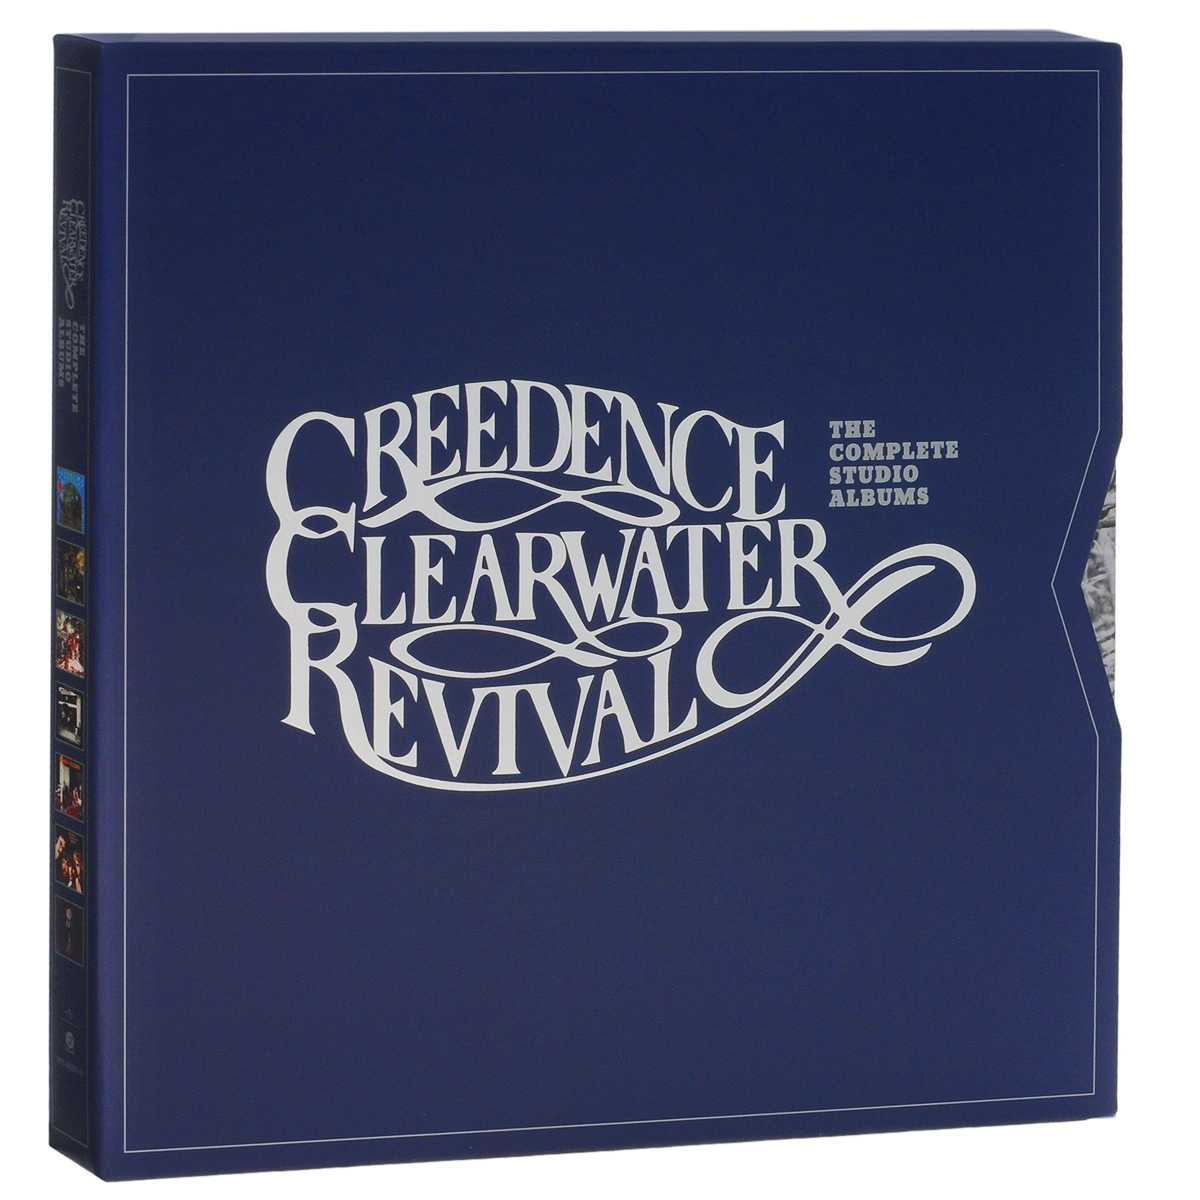 Creedence Clearwater Revival Creedence Clearwater Revival. The Complete Studio Albums (7 LP) creedence clearwater revival – willy and the poor boys lp